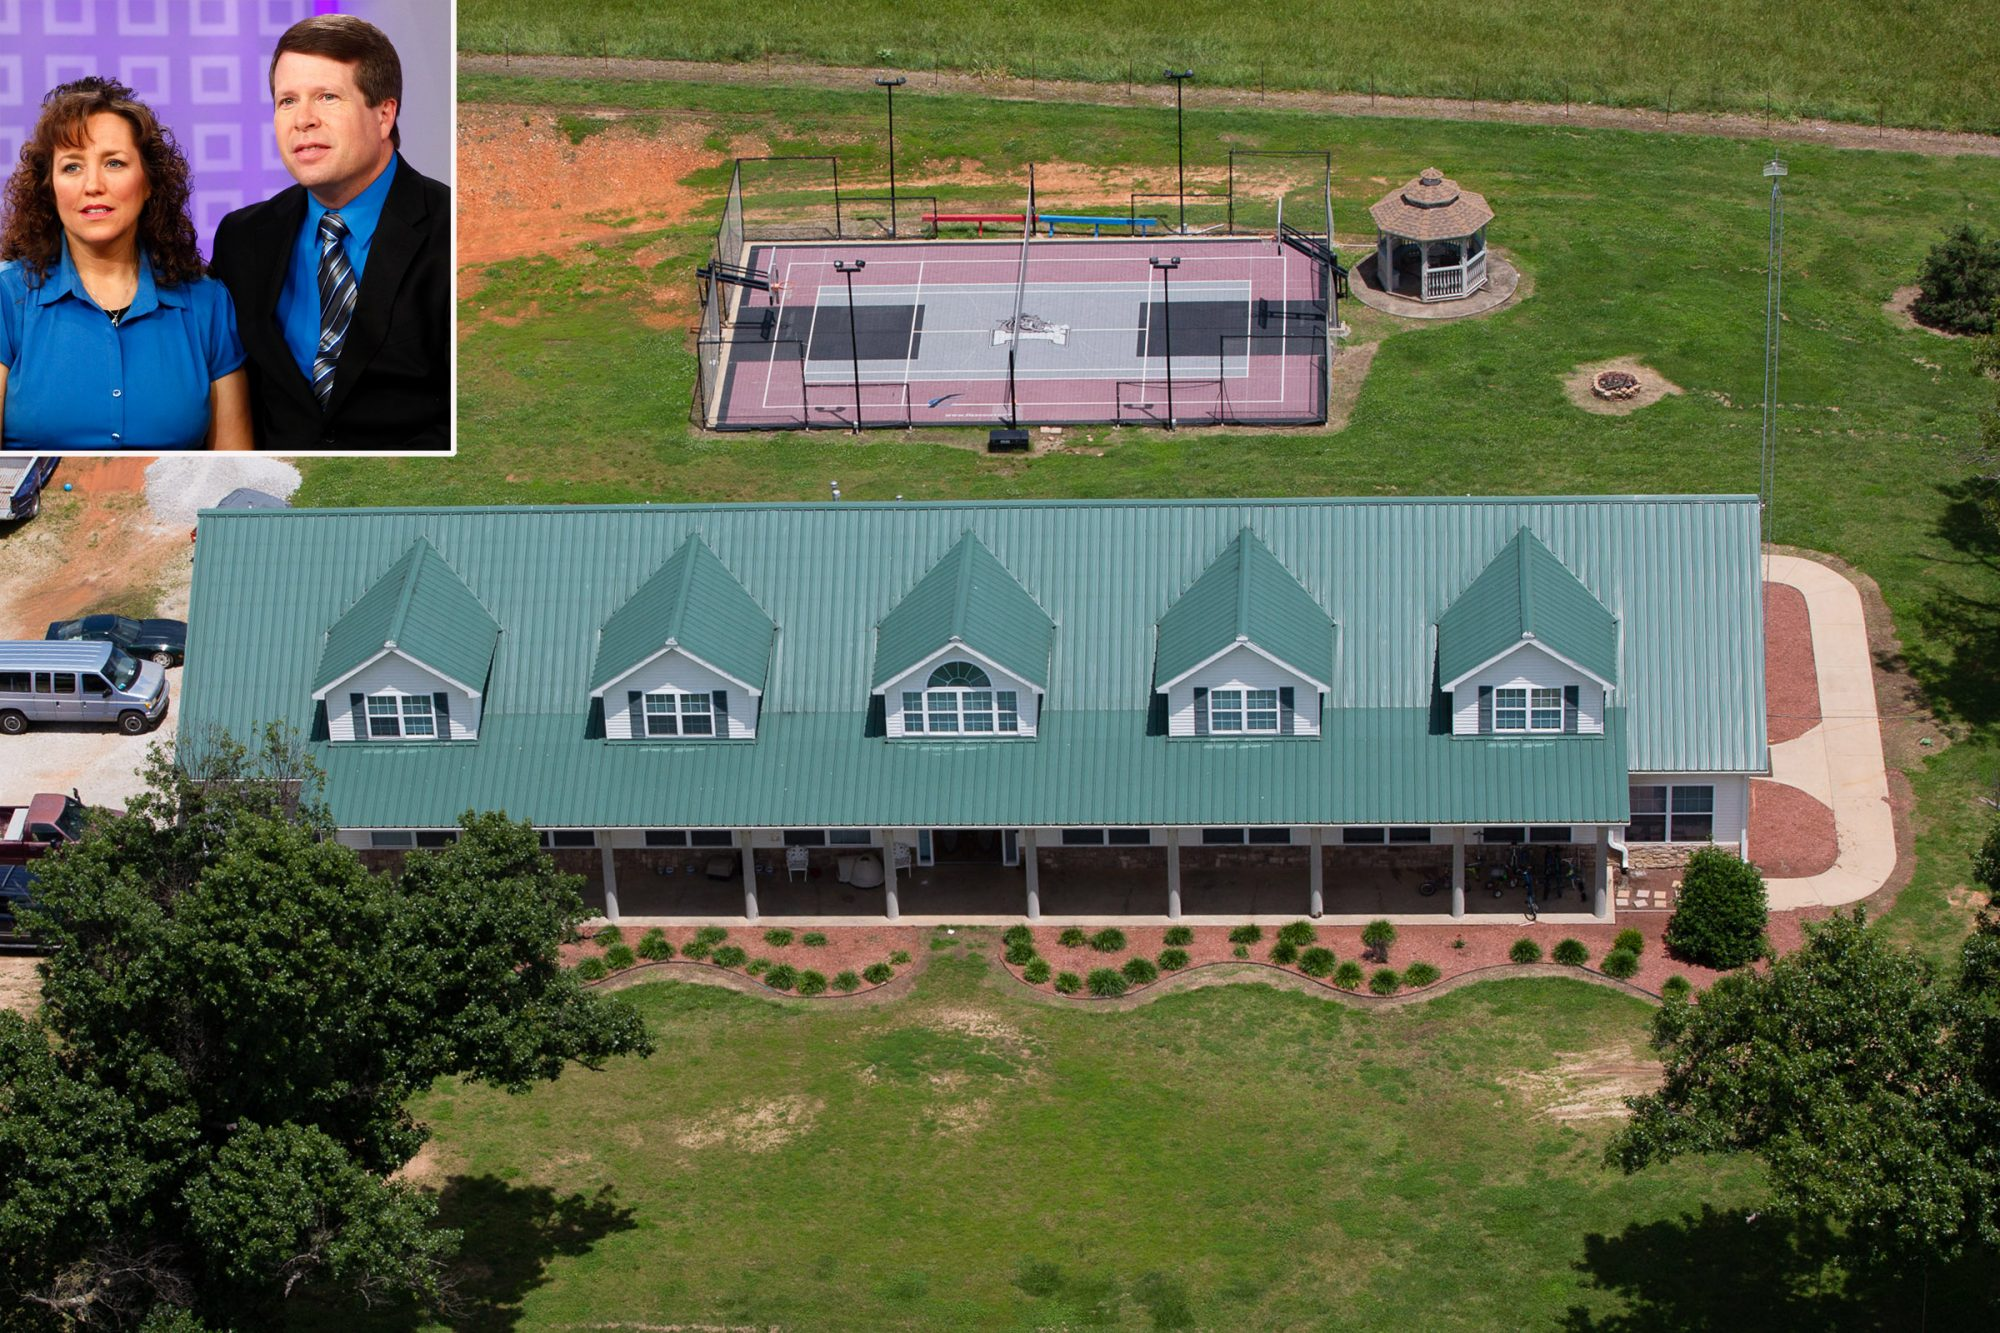 Duggar family compound